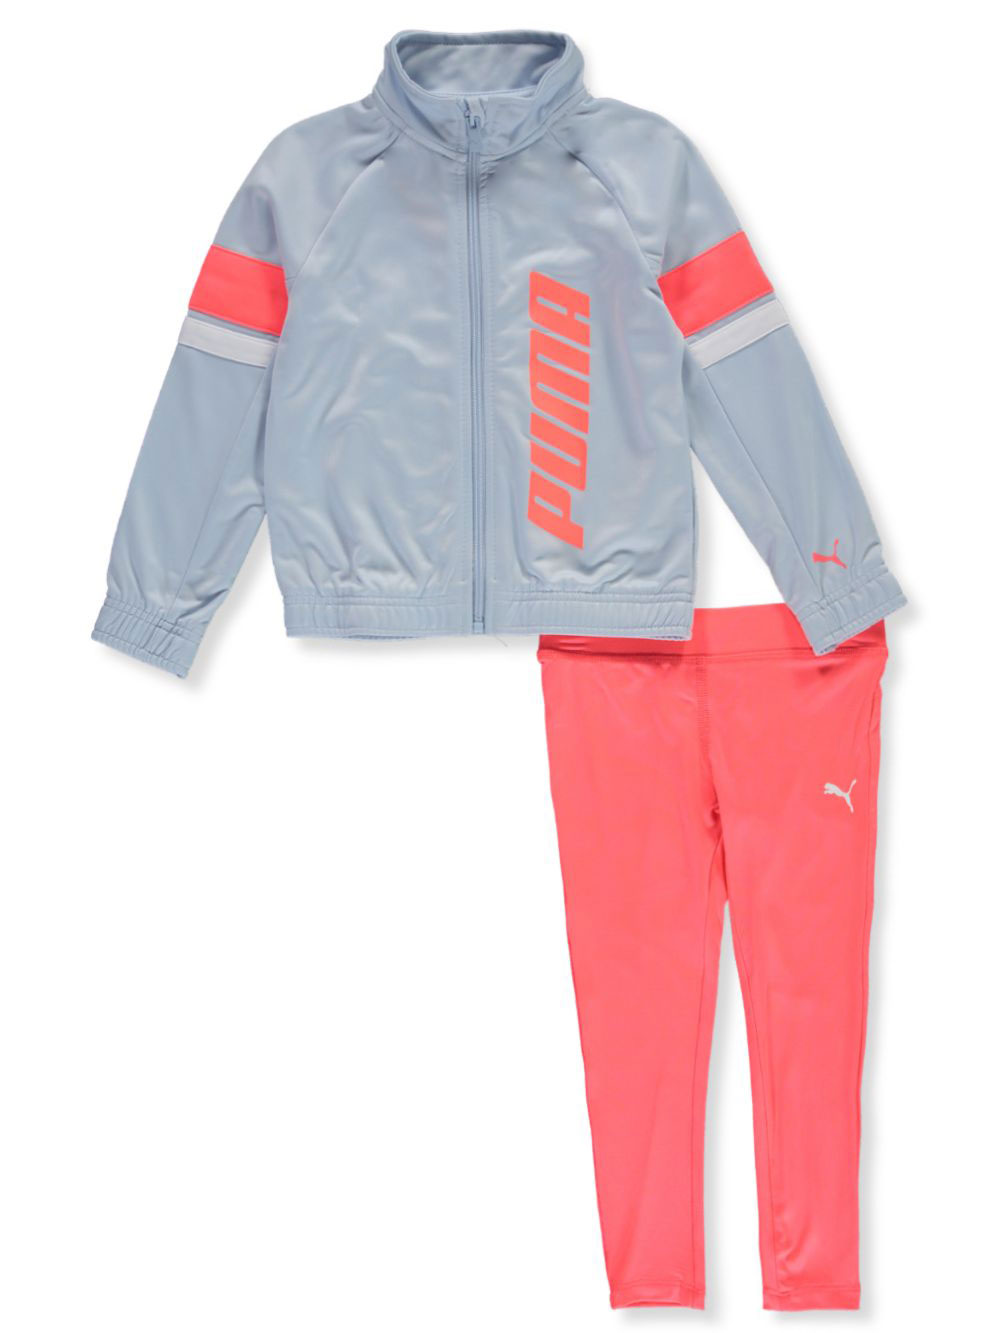 6X 6 Puma 2-piece Girls//Toddler Tracksuit Jacket and Pants Set Size 3T,4